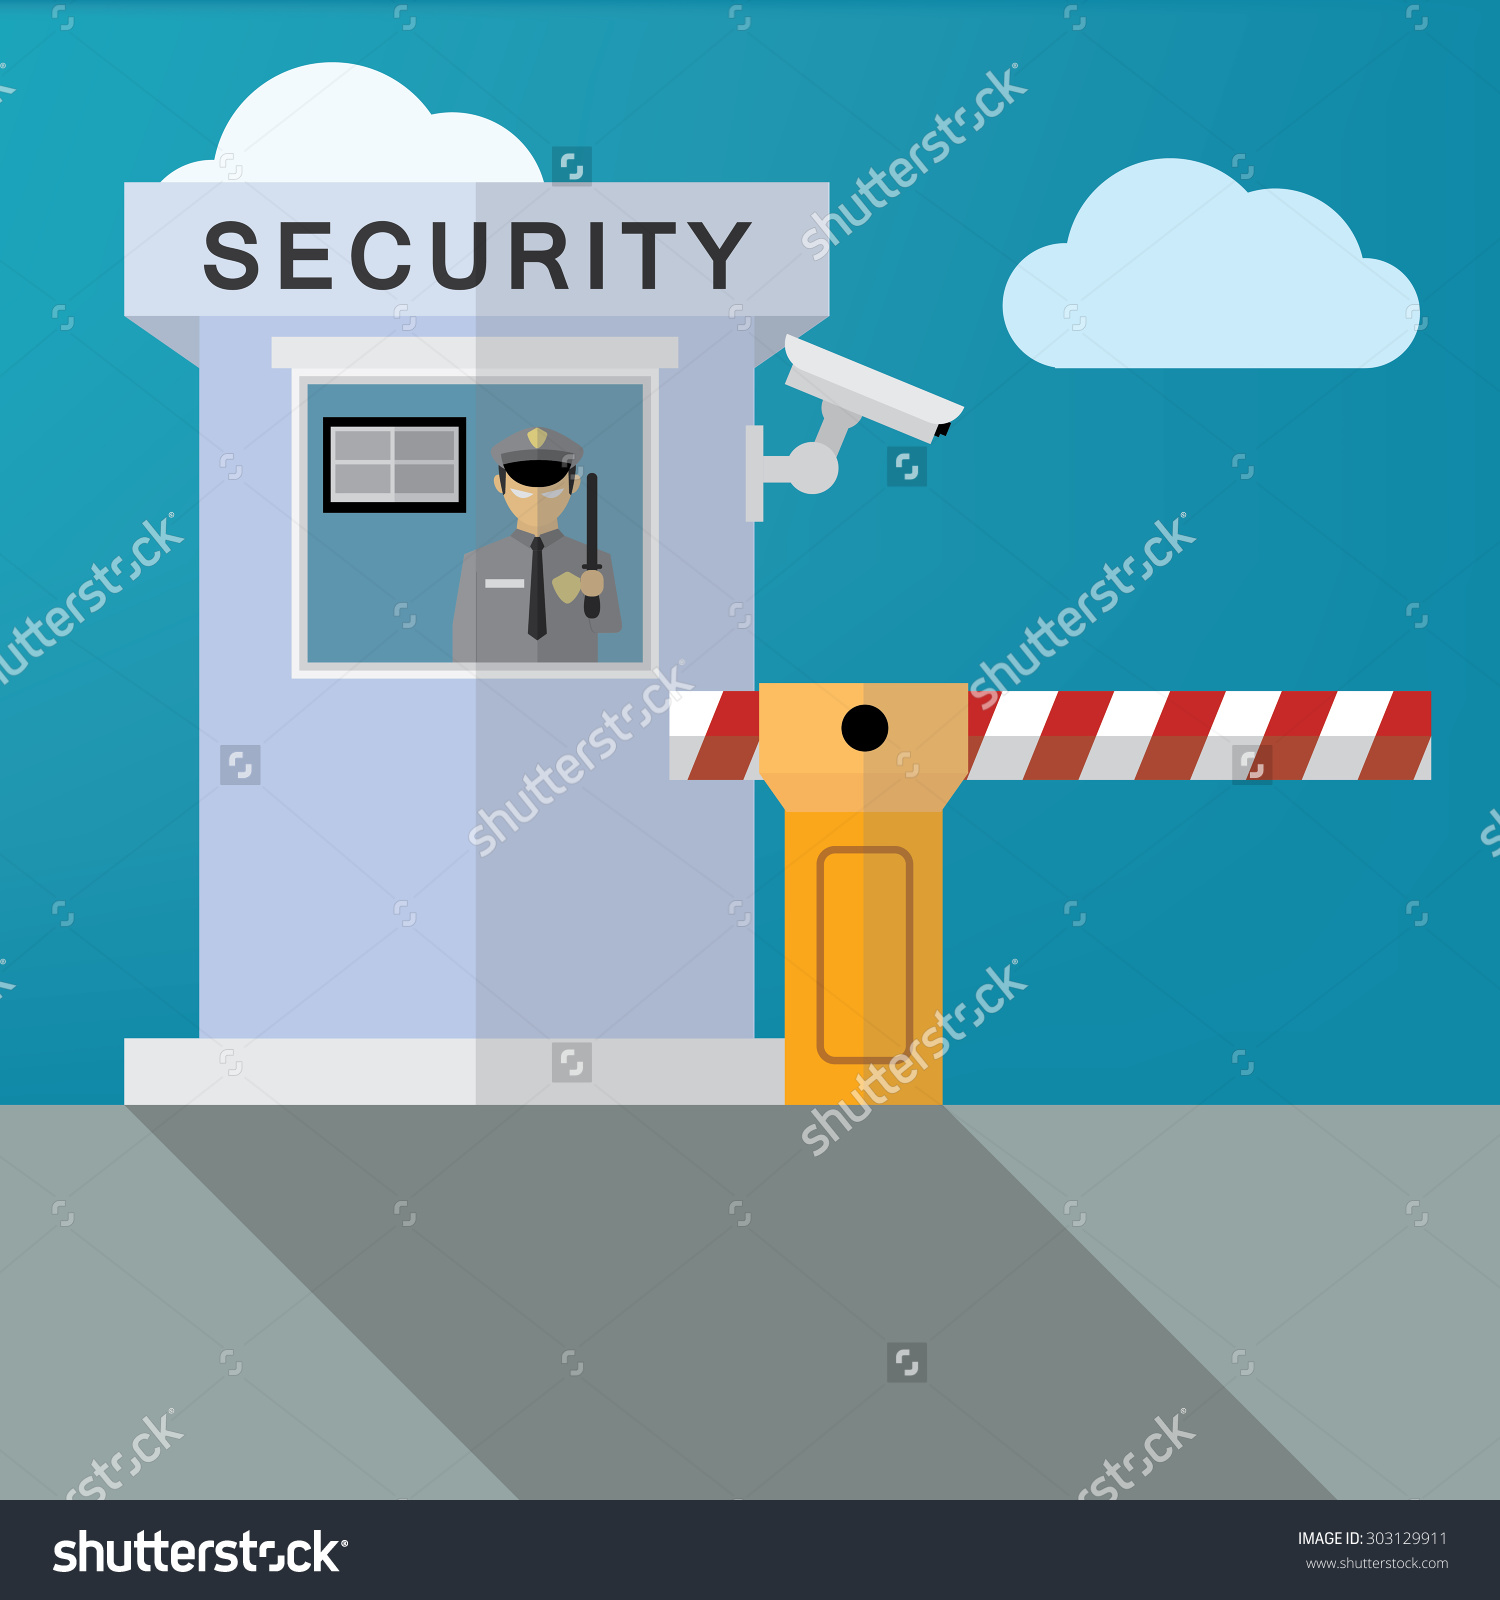 Security gate clipart banner free stock Security Guard Closed Barrier Gate Stock Vector 303129911 ... banner free stock